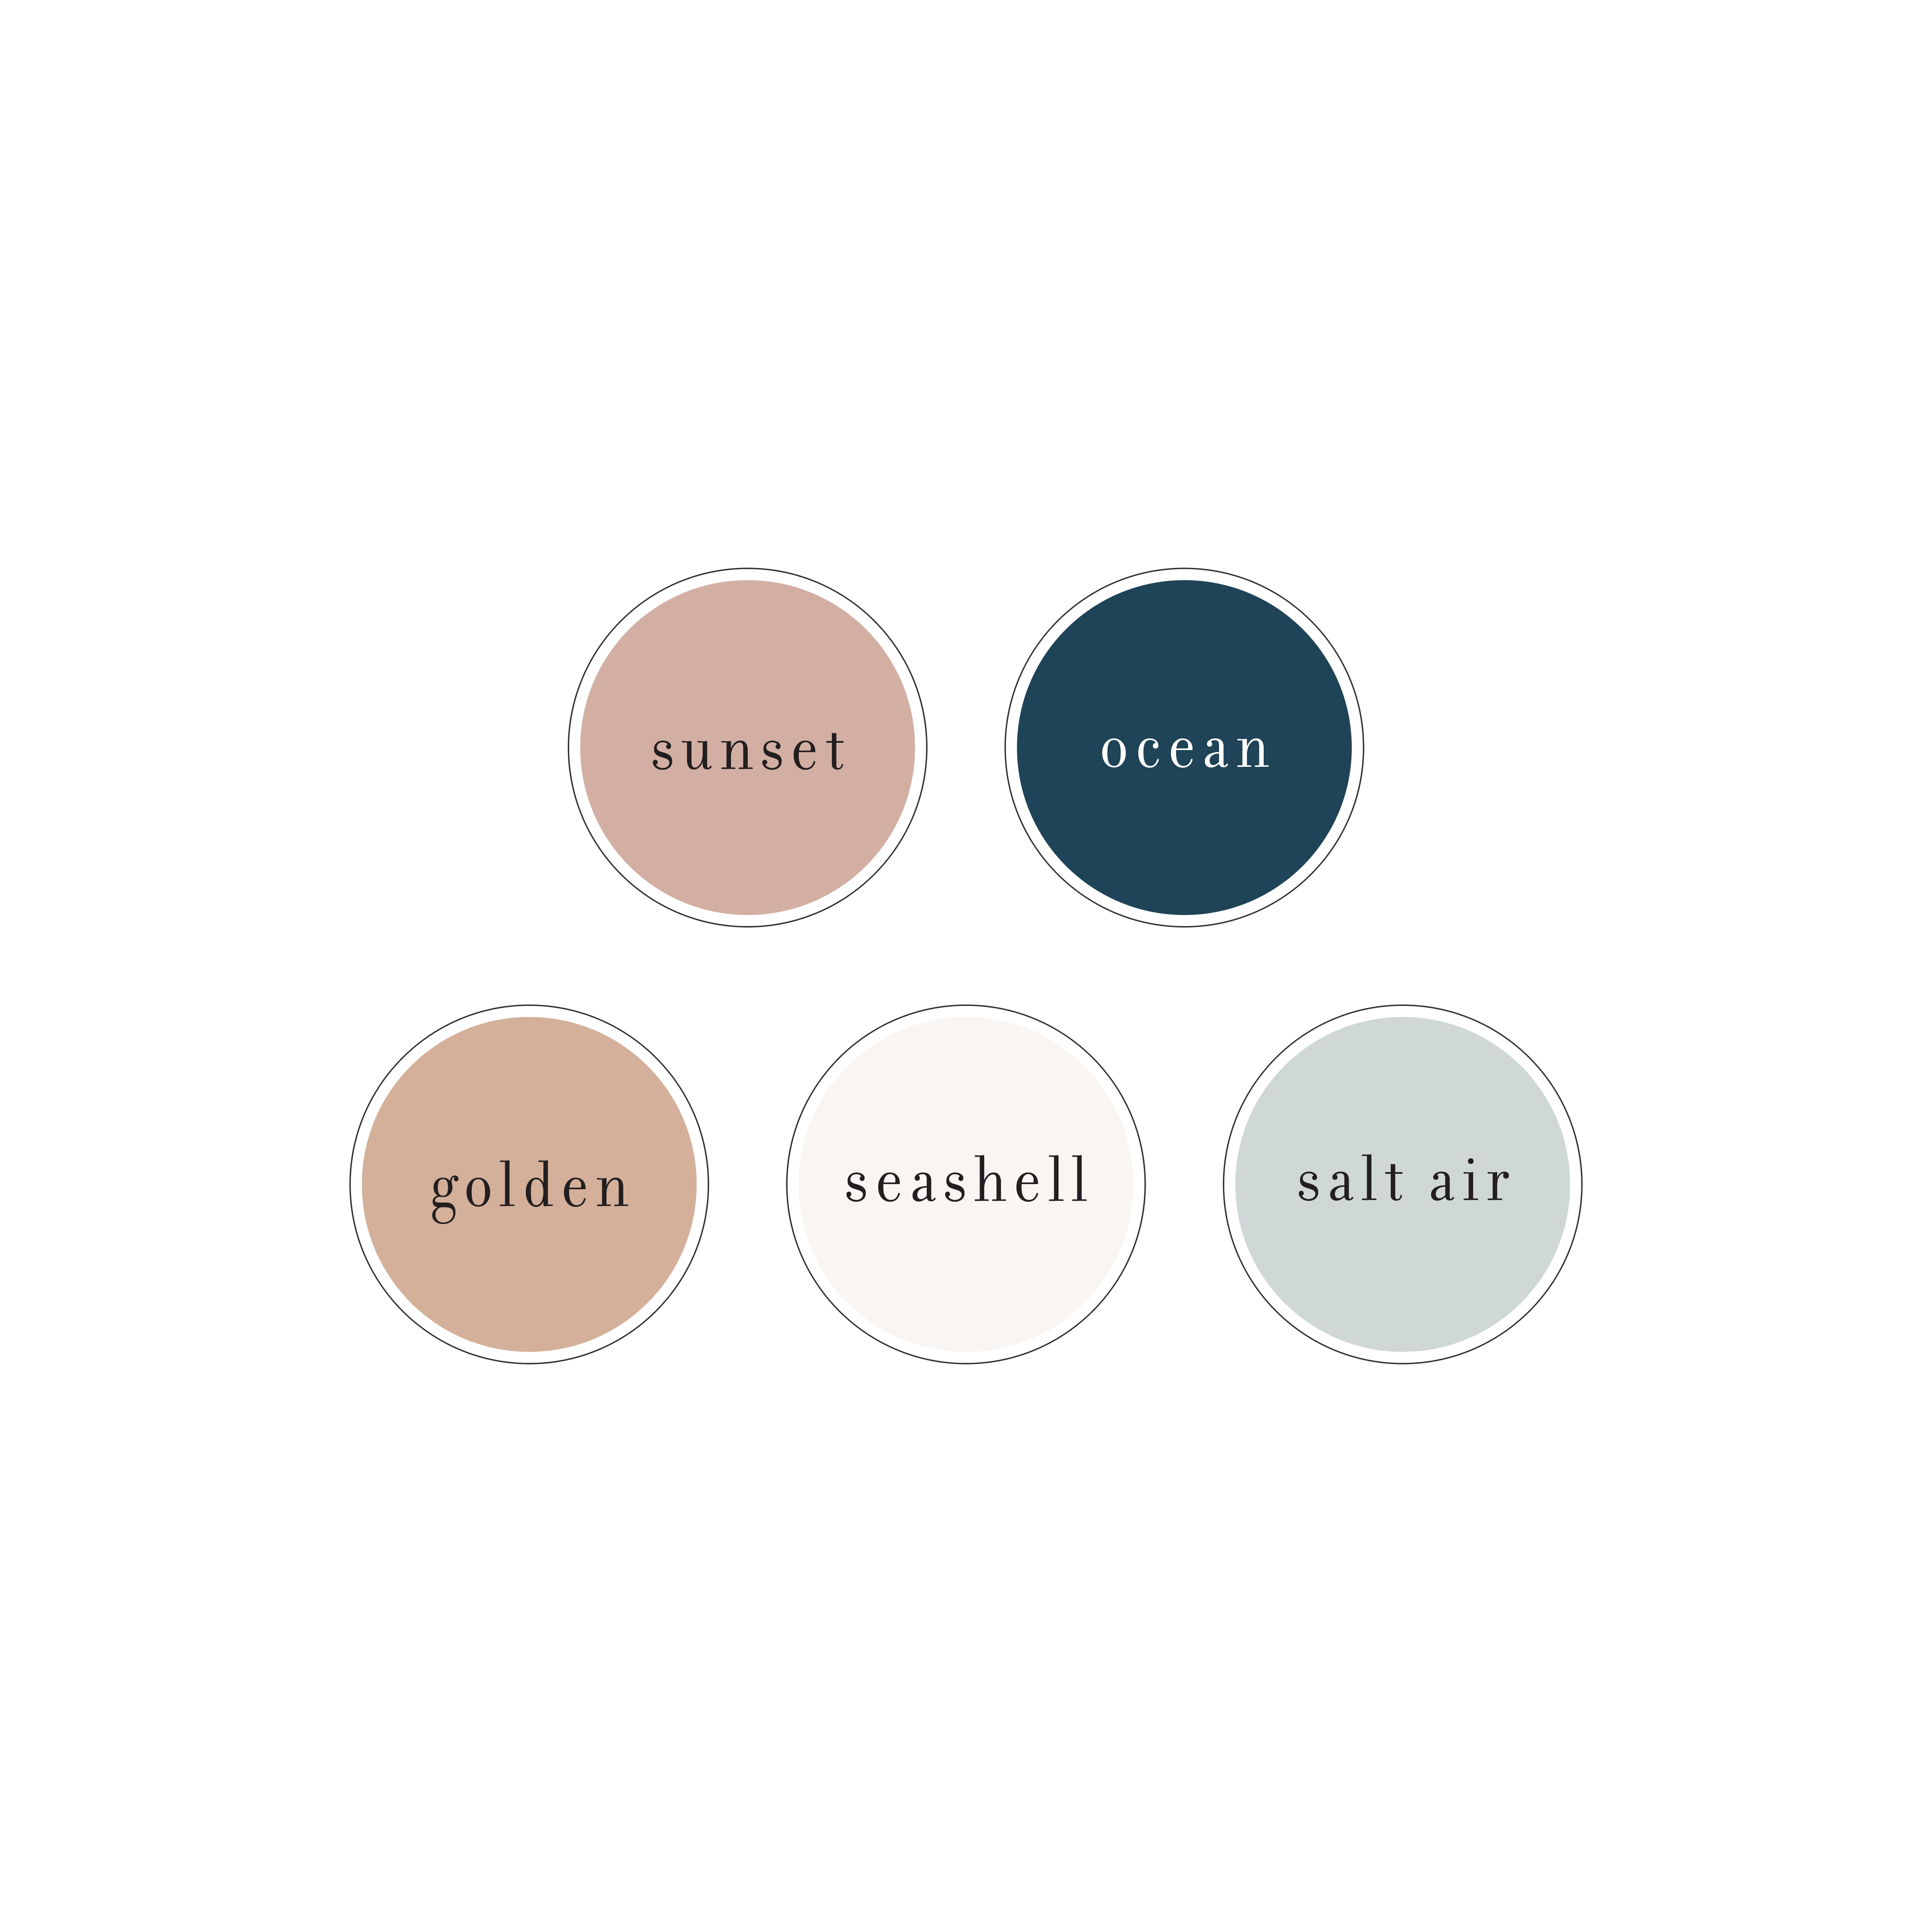 Beachy Summery Color Palette For A Photography Brand New Branding Showit Website Design Comi Website Color Palette Brand Color Palette Brand Colour Schemes